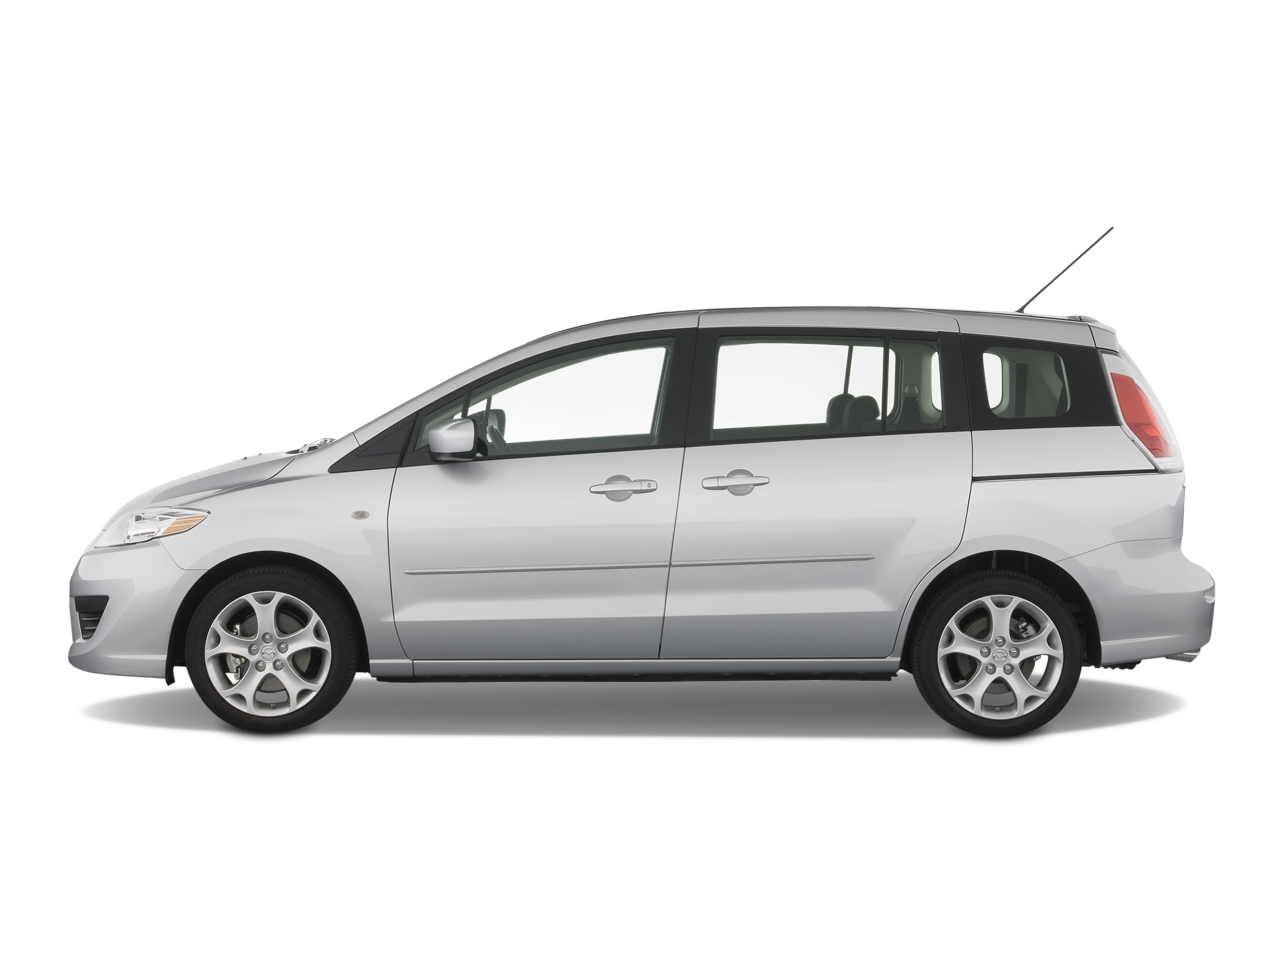 http://st.automobilemag.com/uploads/sites/10/2015/11/2008-mazda-mazda5-sport-wagon-side-view.png